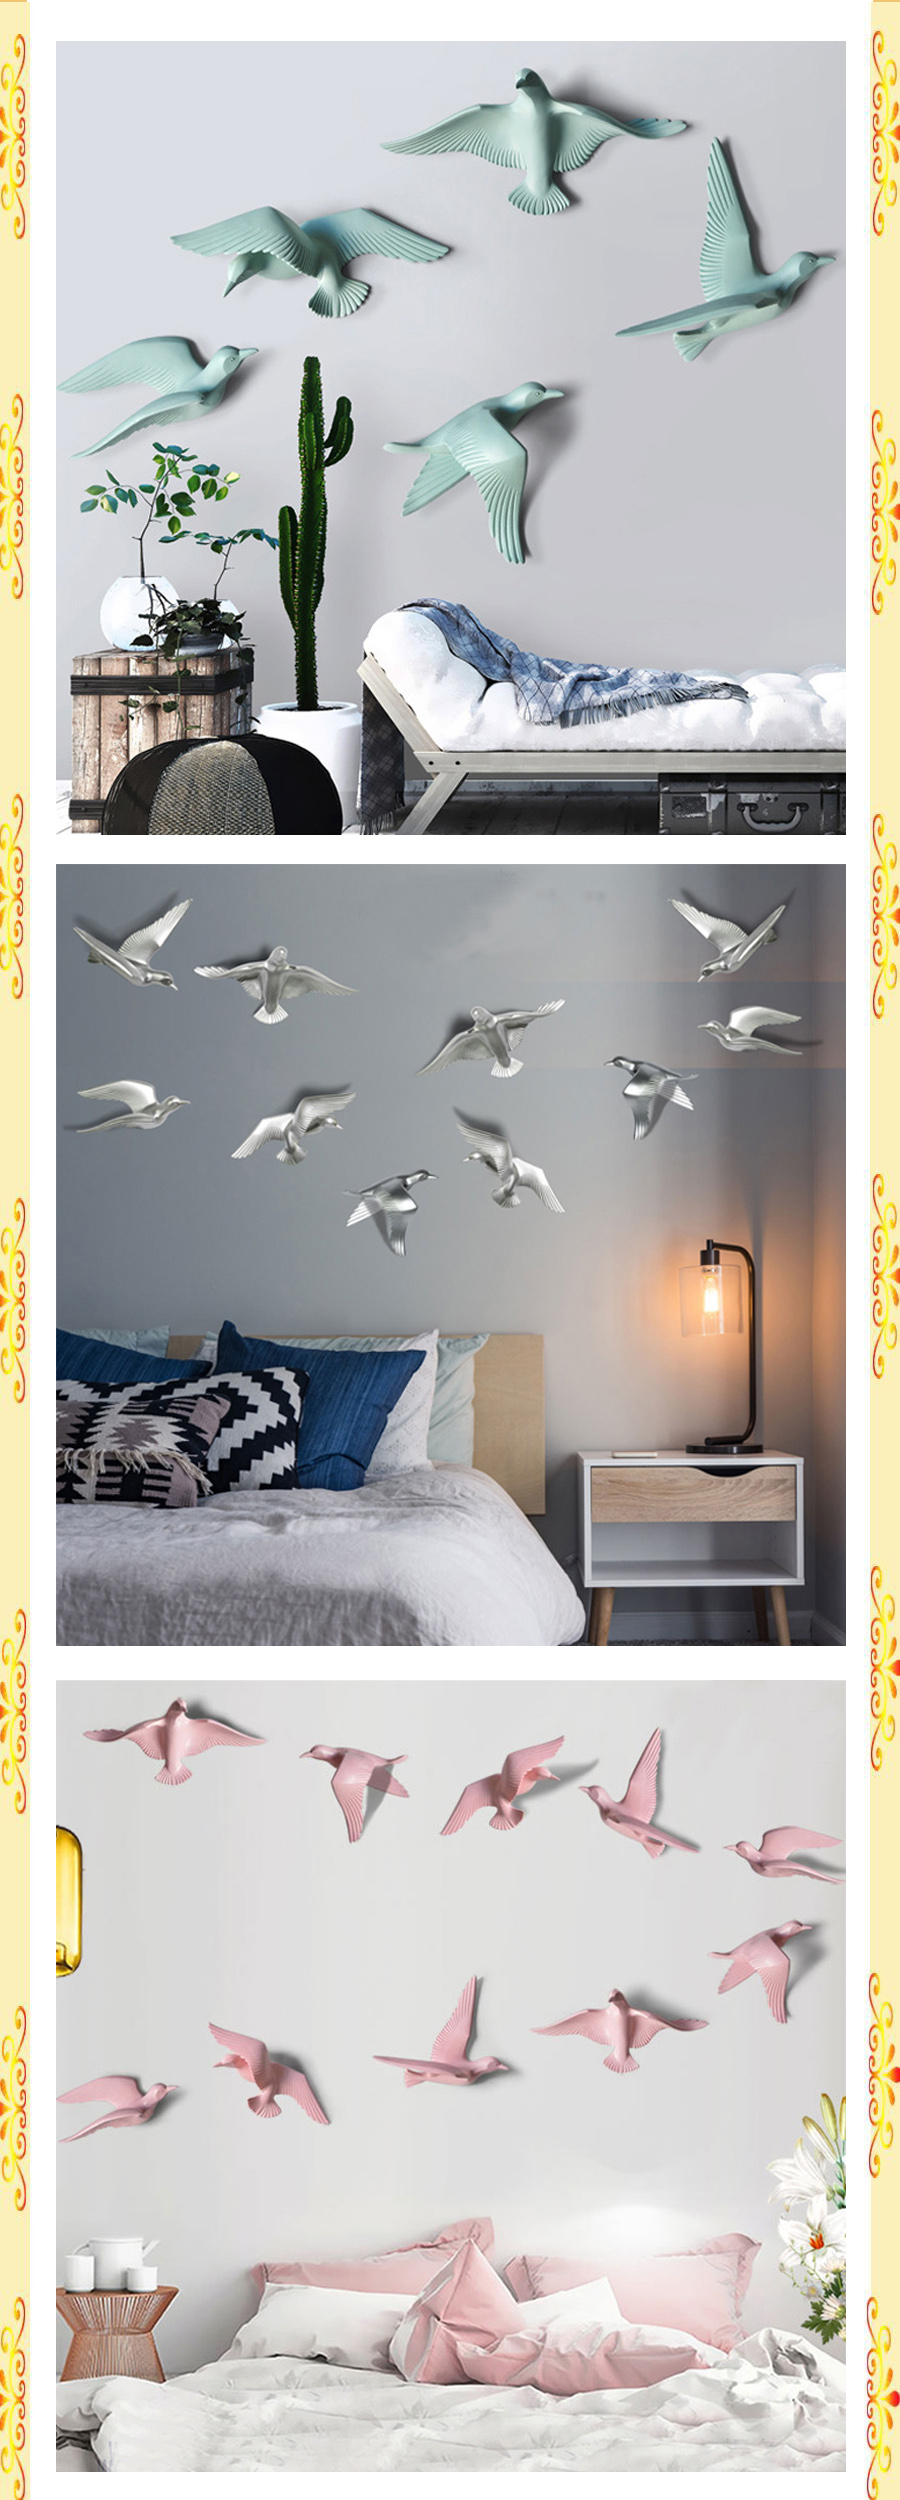 5pcs Hanging Birds For Home Decor Free Shipping